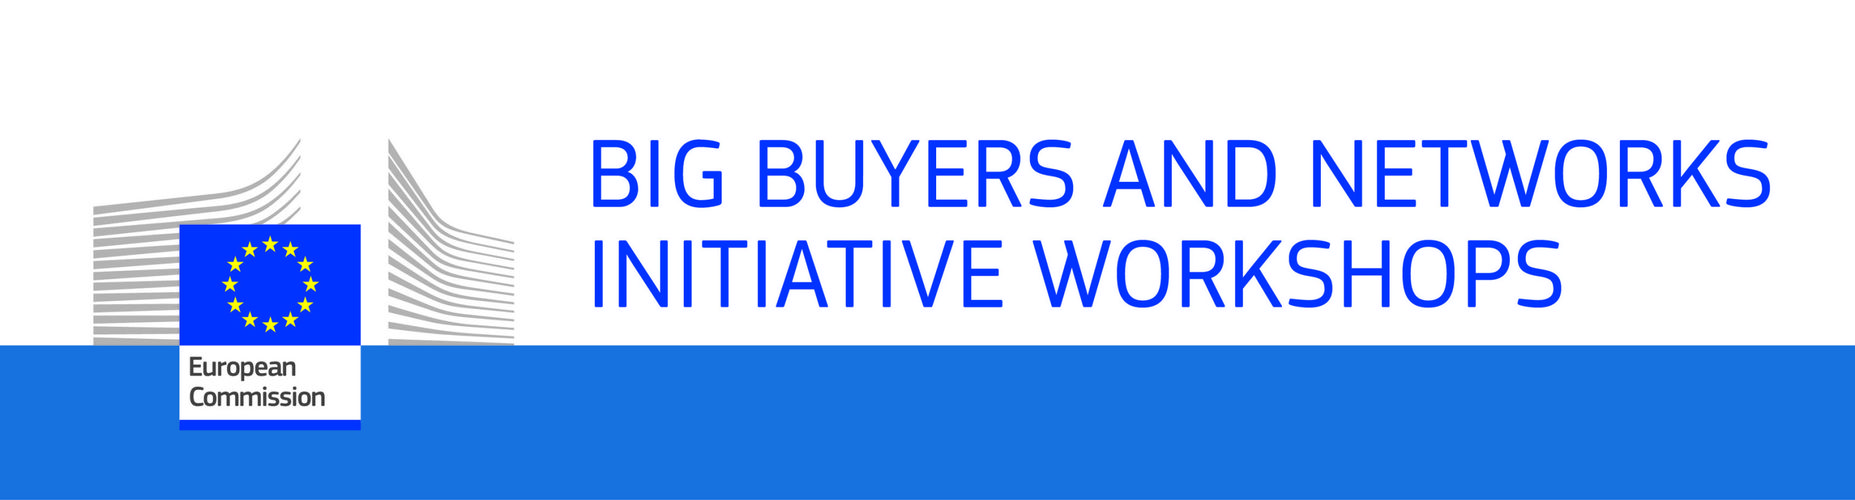 Big Buyers and Networks Initiative workshops - Oslo - 28-29 November